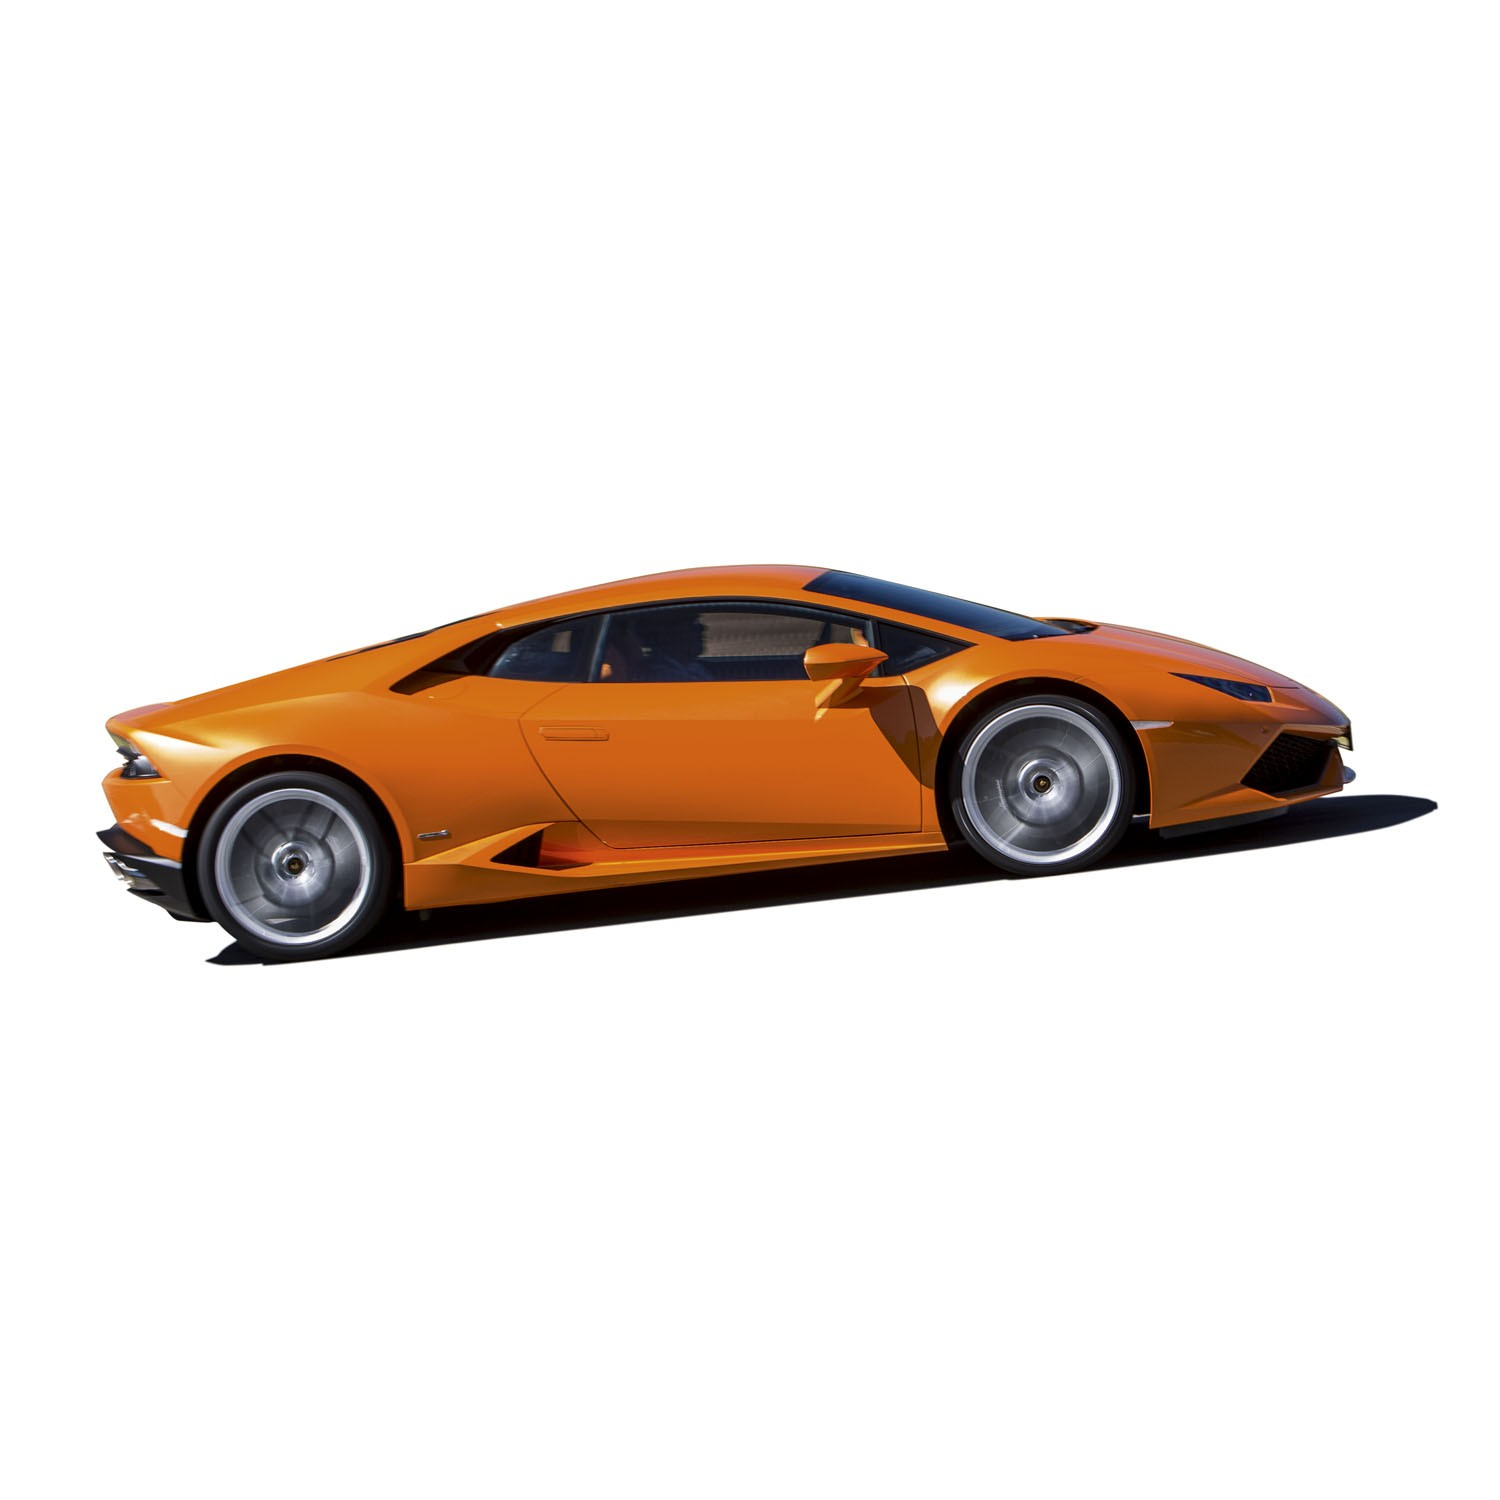 rc planes design with Build The Lamborghini Huracan on 27931 Declasse Sabre Turbo Custom together with Seagull Bucker JU 133 Jungmeister ARF US p 272 additionally Ka6sailplane furthermore Id14 furthermore Messerschmitt Me 163 Komet Takes To Air.